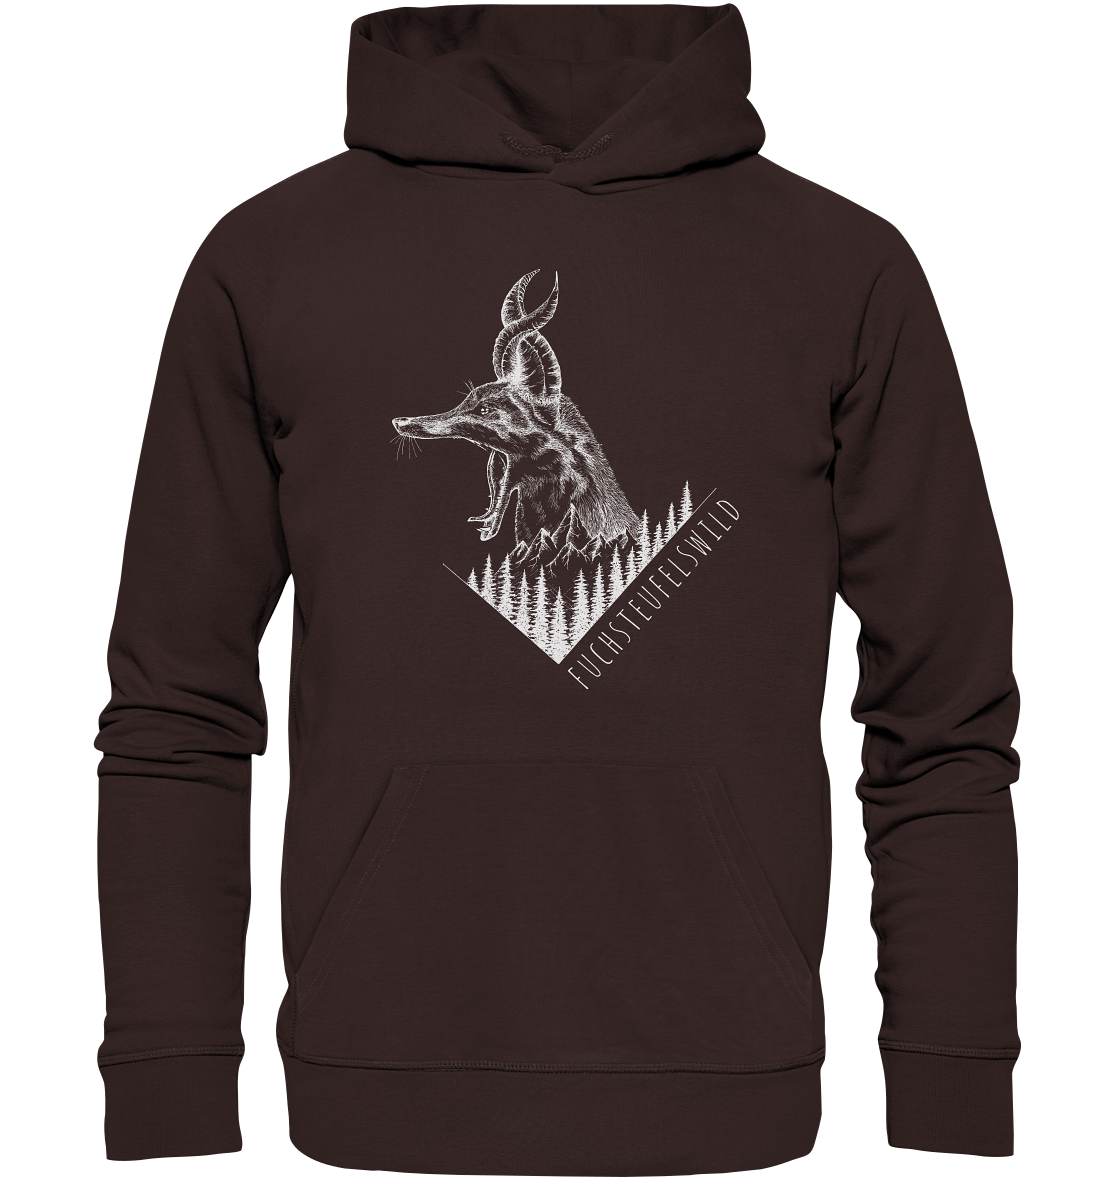 front-organic-hoodie-372726-1116x-3.png